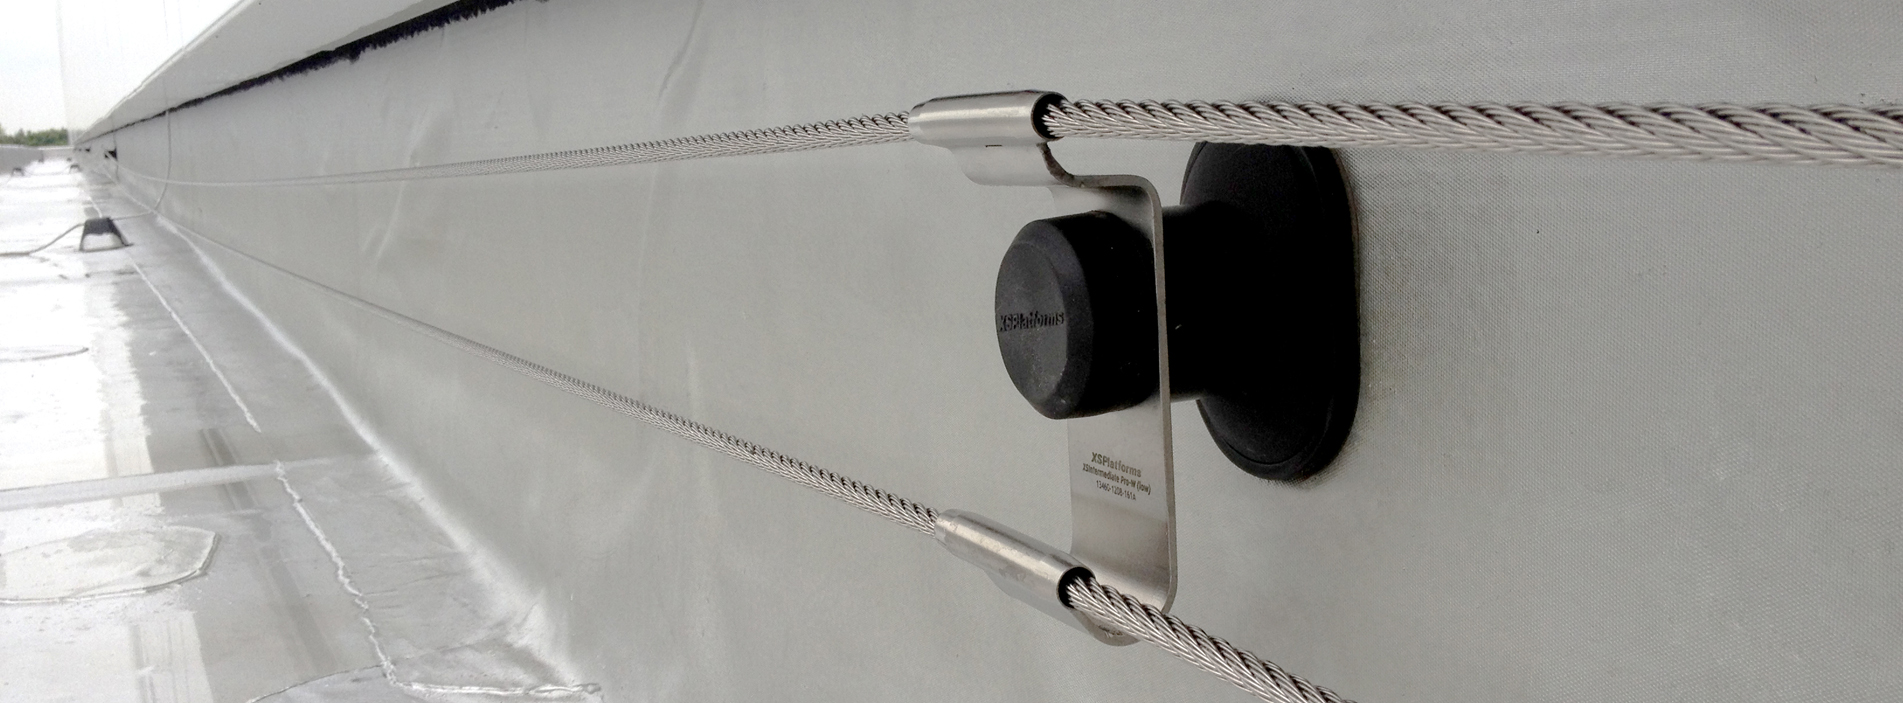 linkedpro wall banner fall protection arrest system multiline